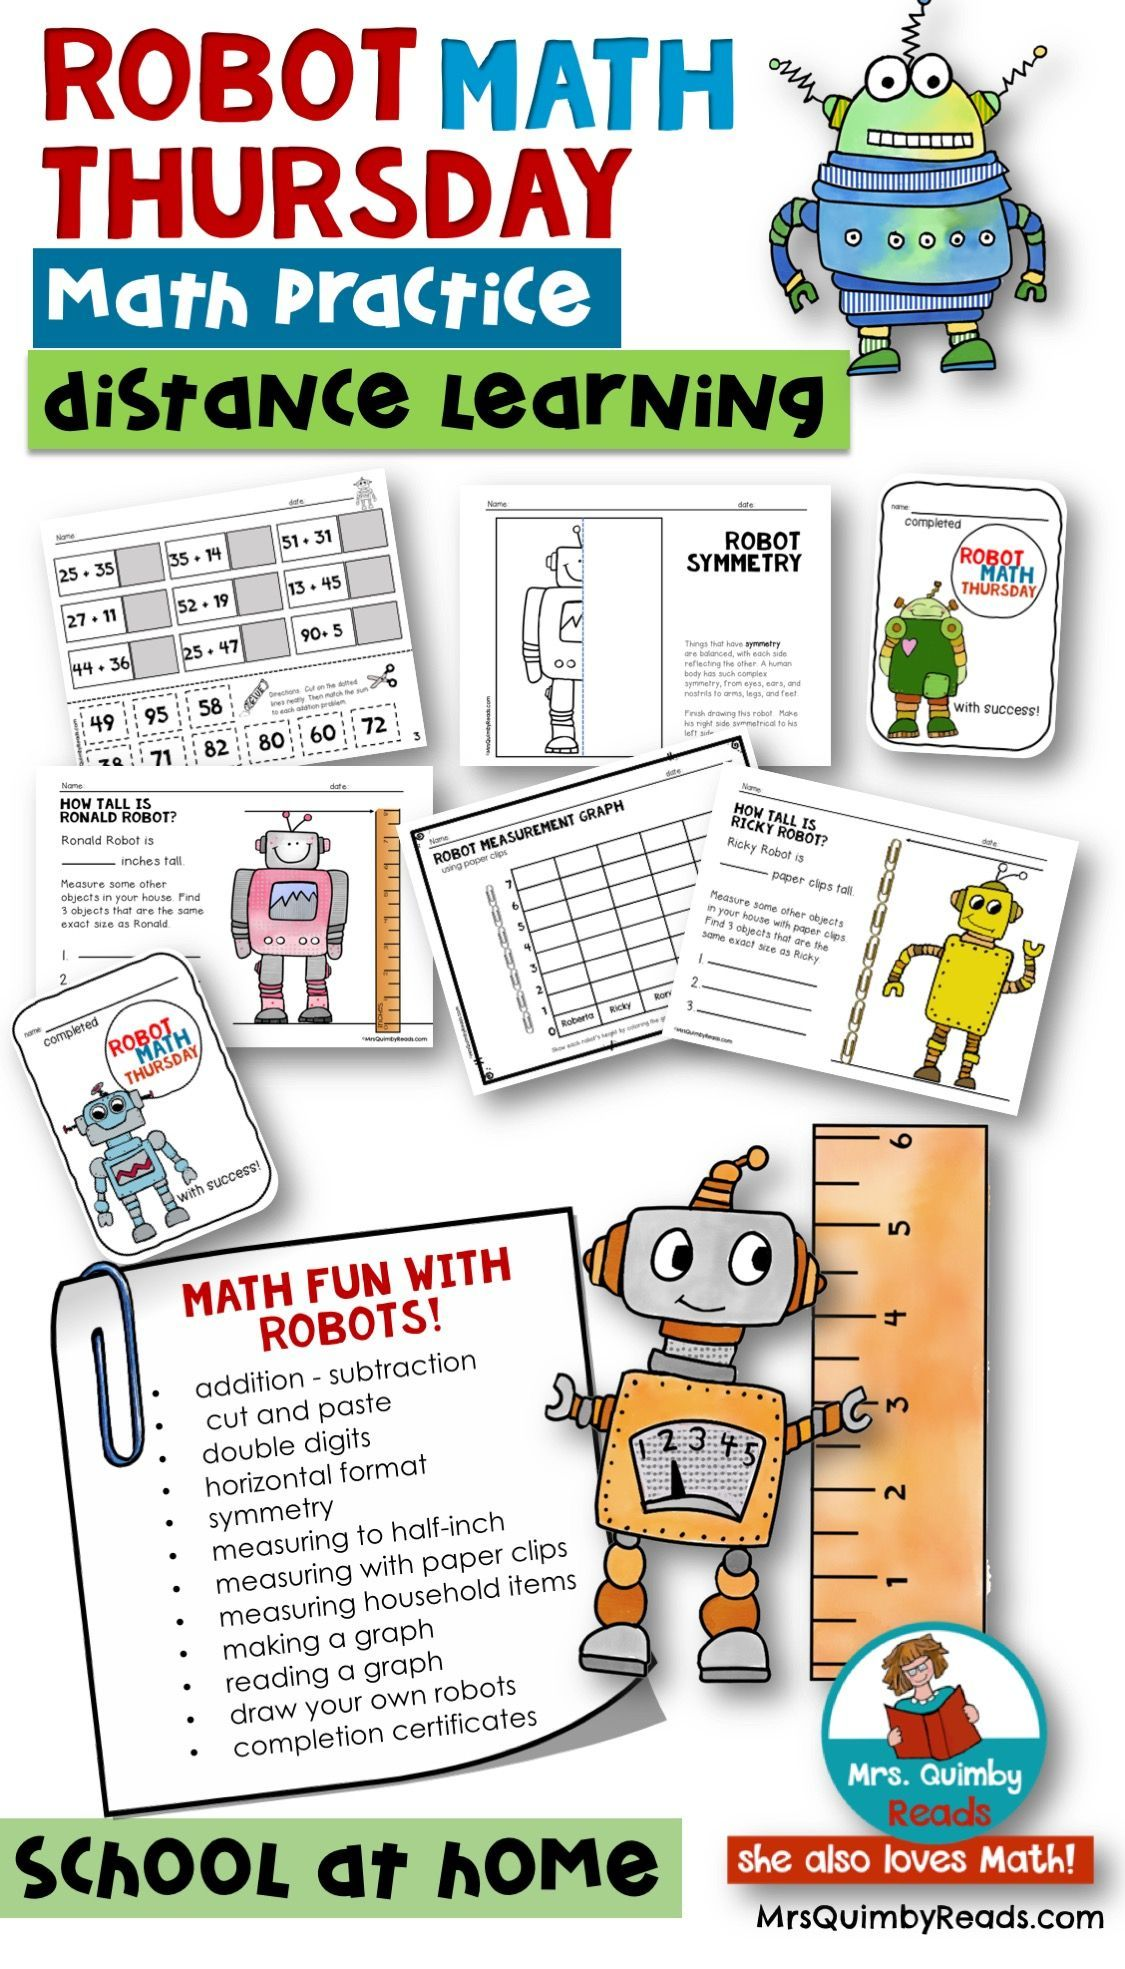 Robot Math Thursday Arithmetic Measurement Graphing Distance Learning Fun Math Math Distance Learning Measurement addition and subtraction